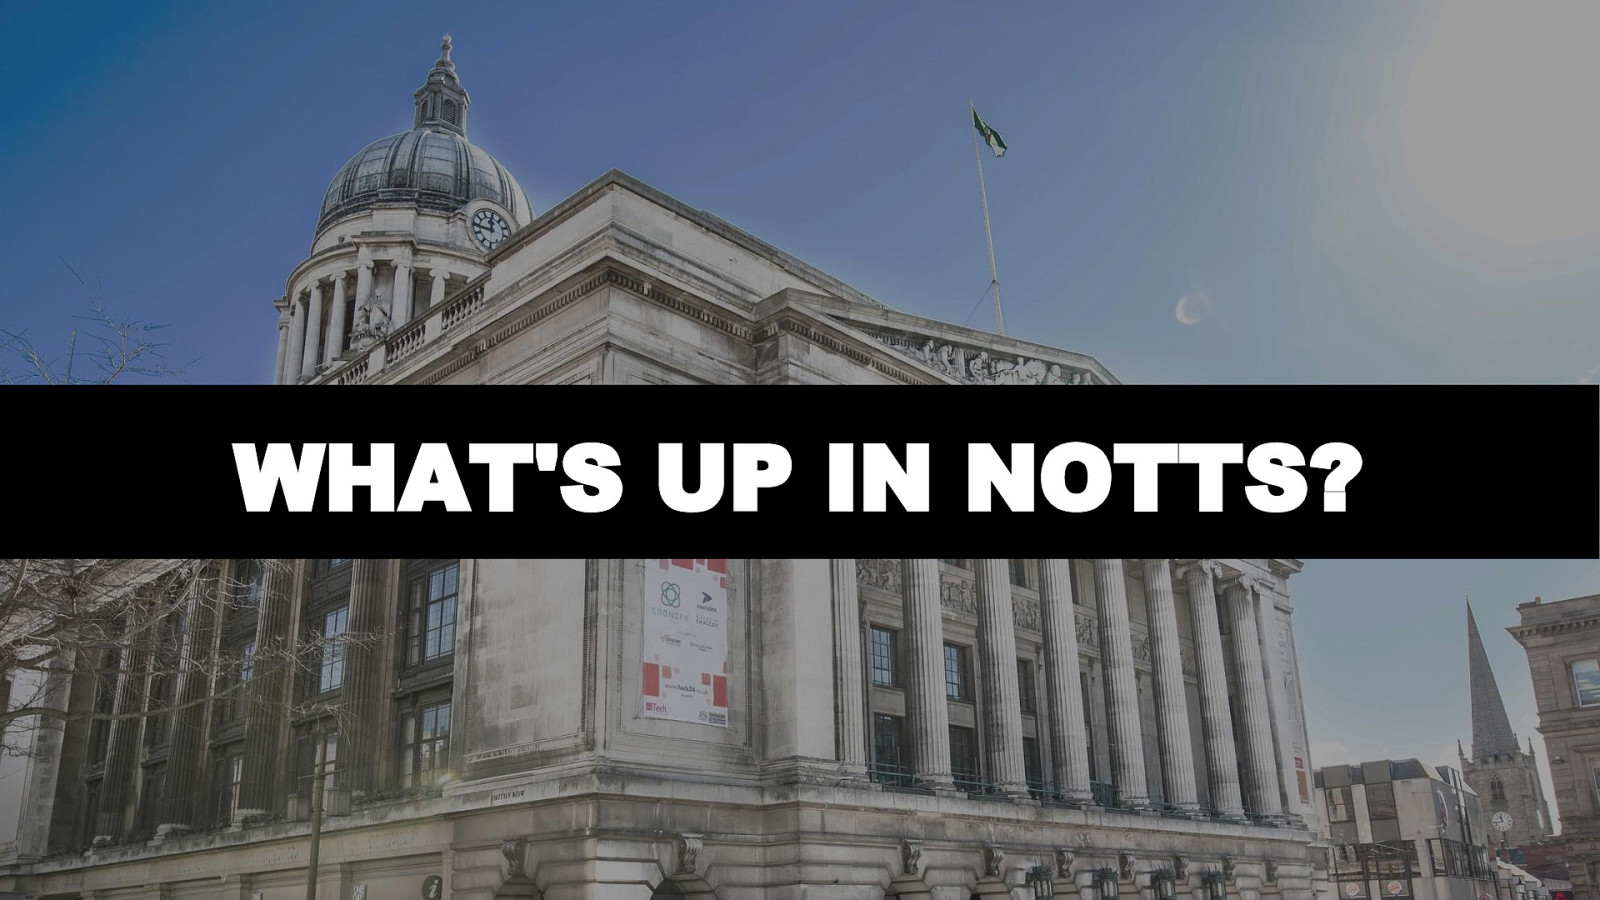 What's up in Notts?